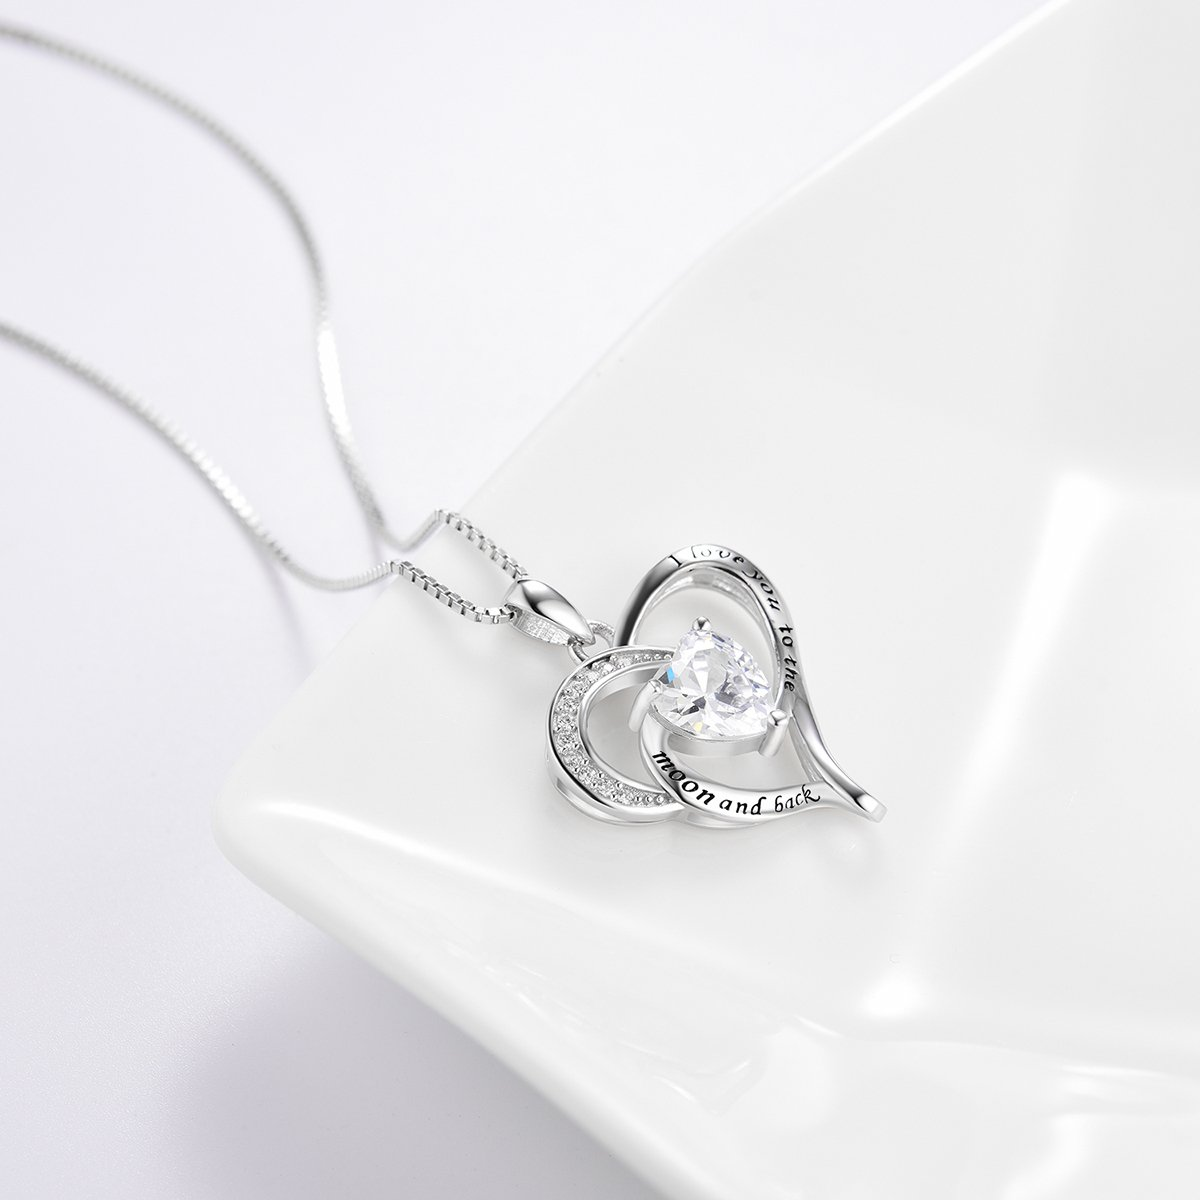 Bellrela Sterling Silver I Love You to The Moon and Back Necklace Heart Love Pendant Necklace